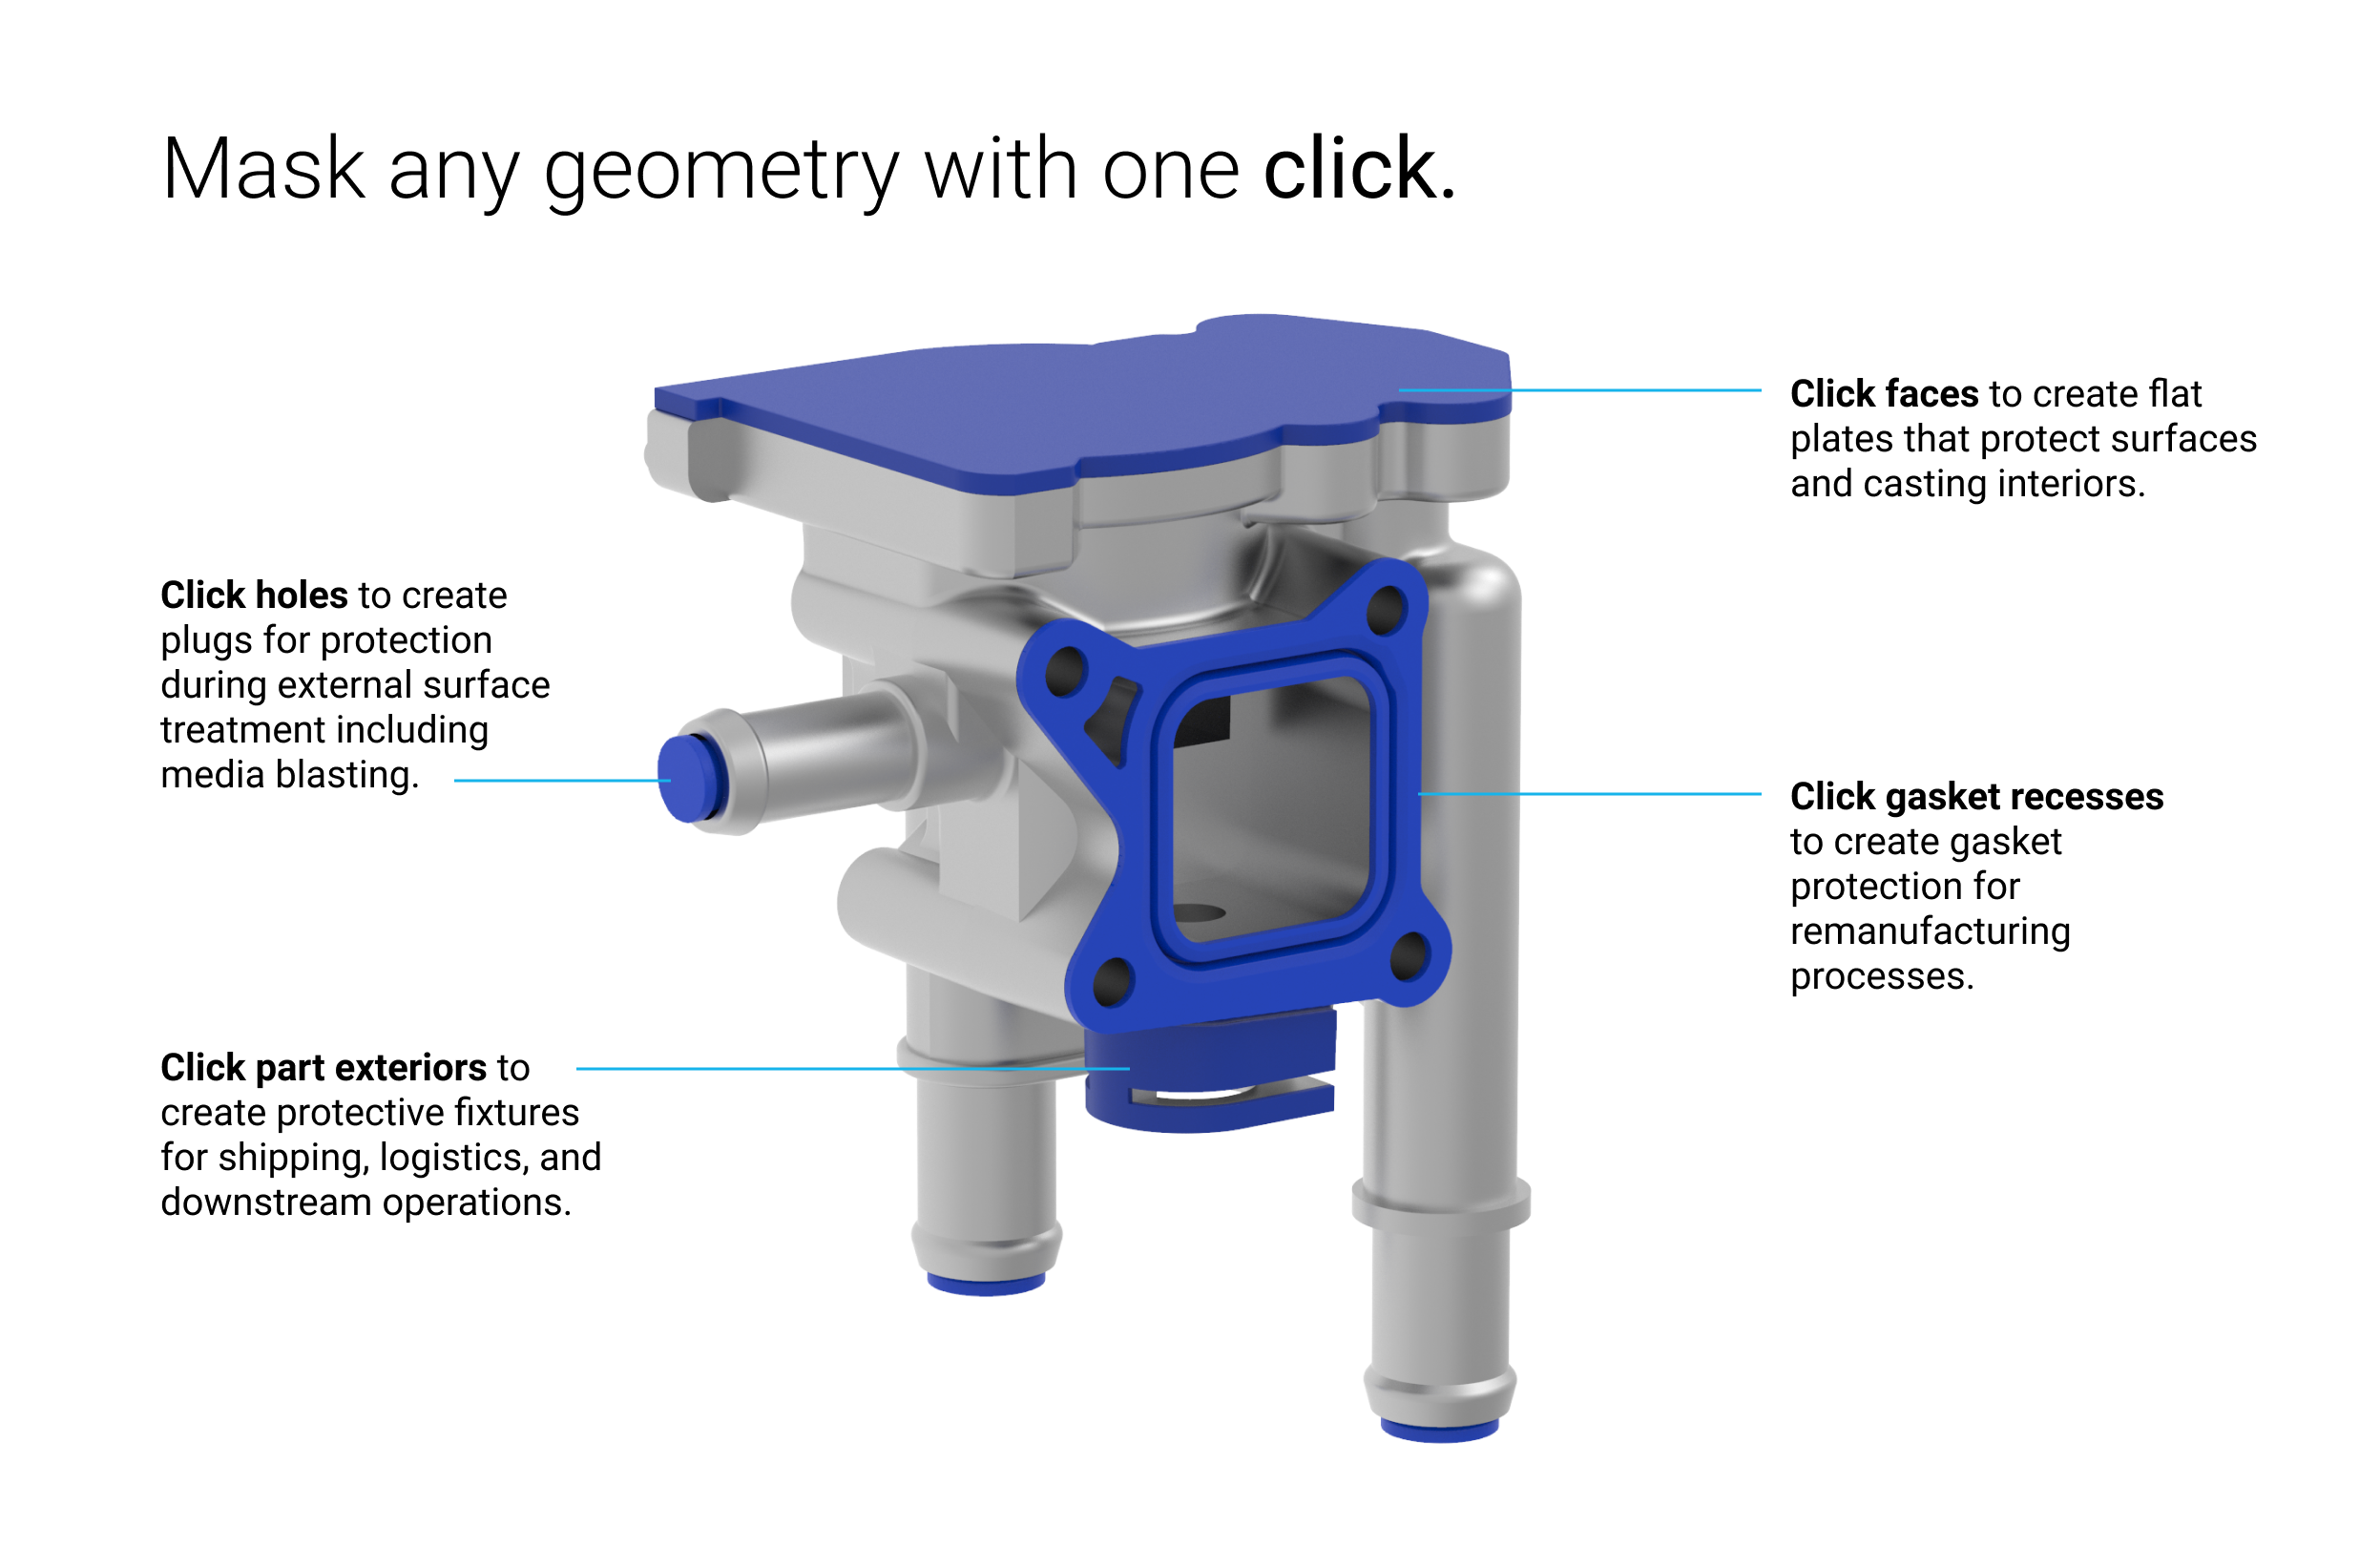 The Masking Fixture Module is capable of saving users hours of work in CAD design for each job. Image via nTopology.